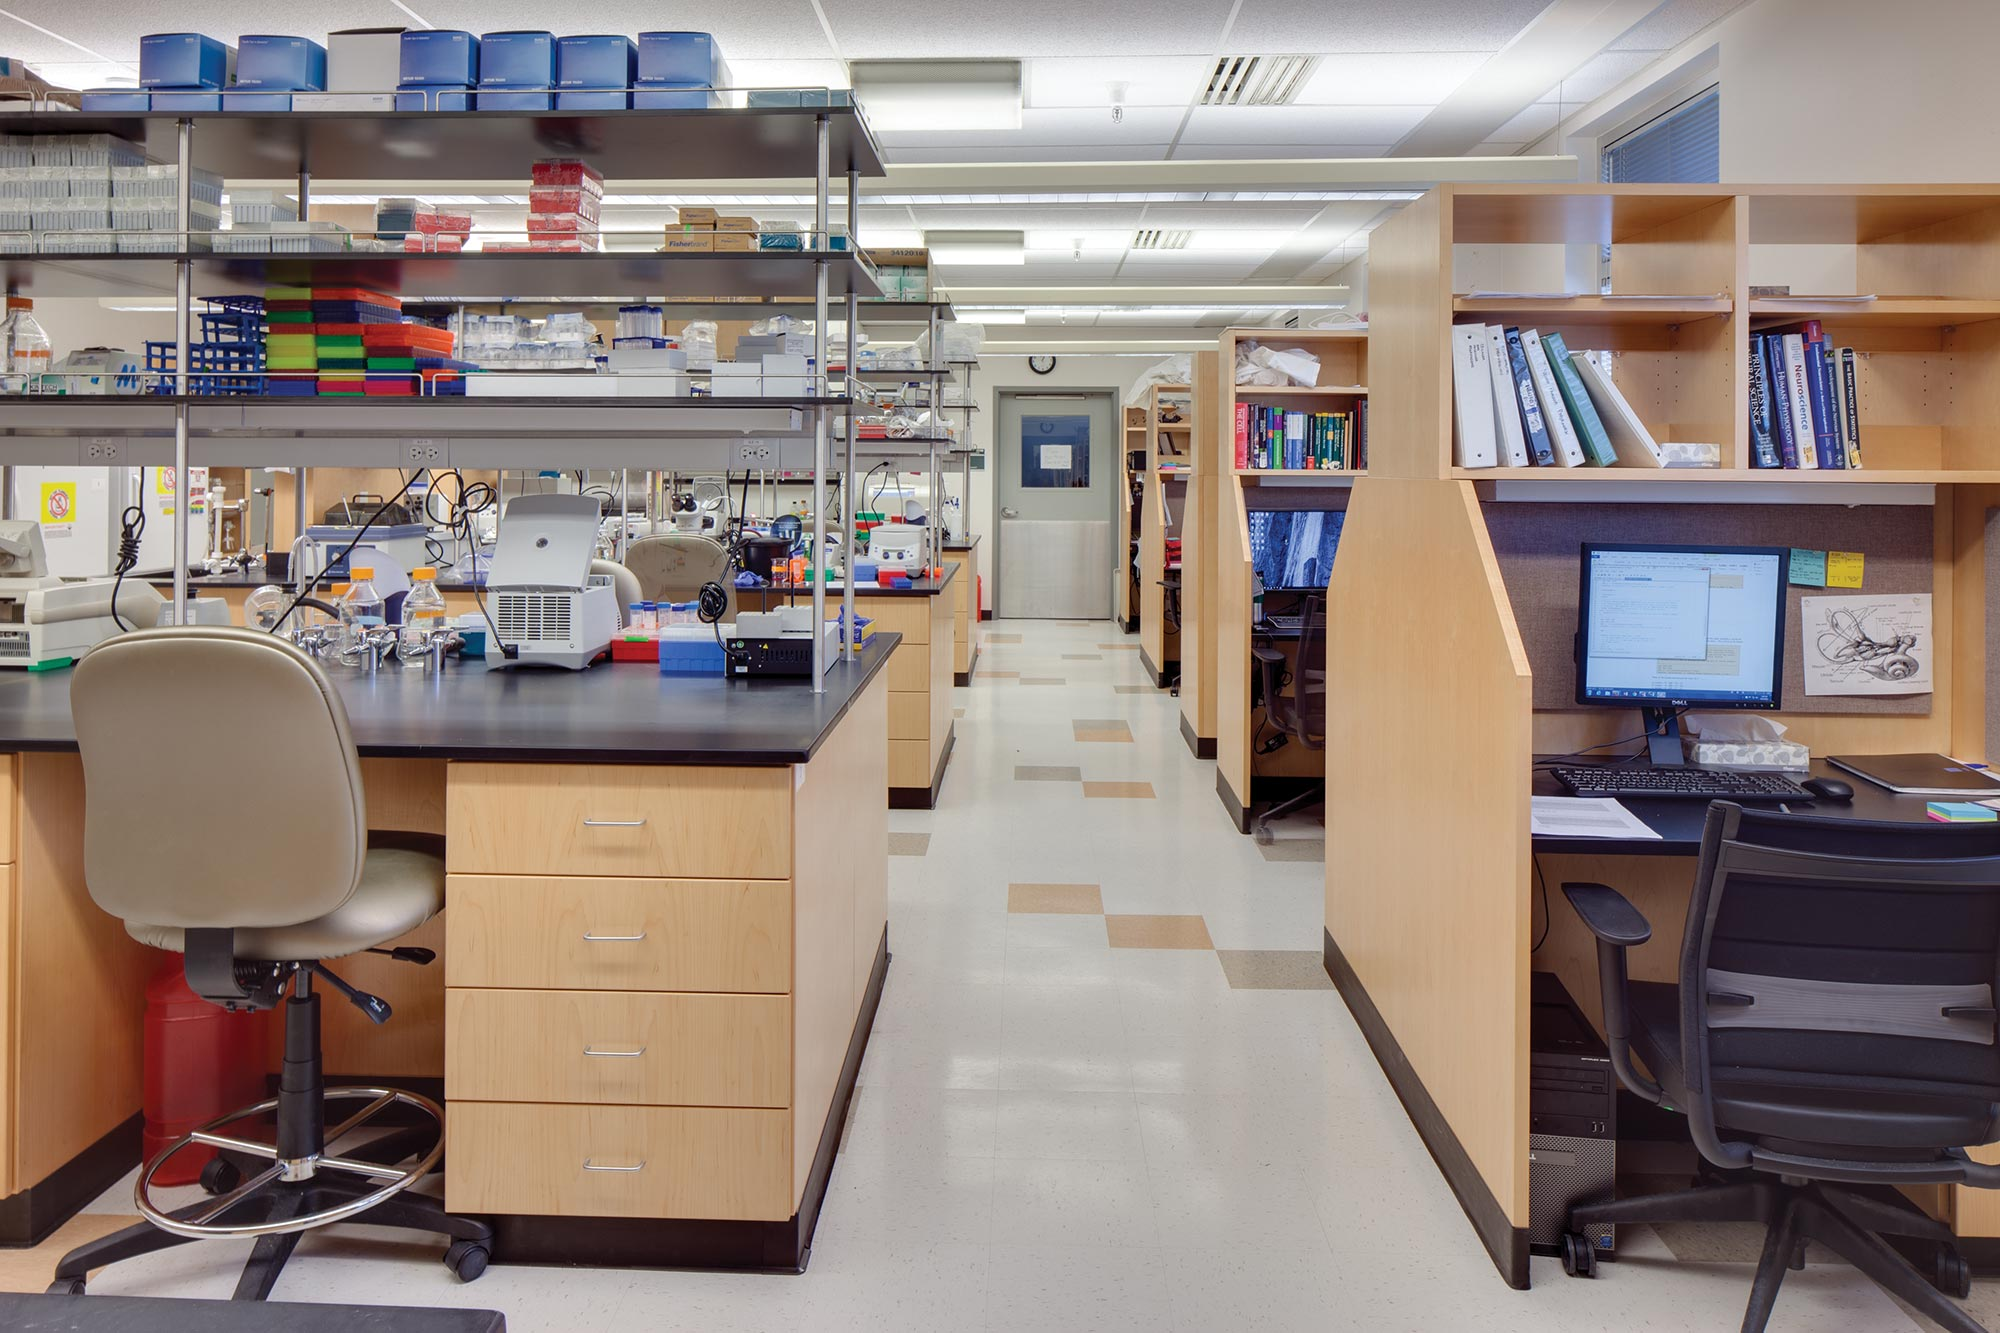 Biopolymers-Interior-Lab-bench-researcher-Space